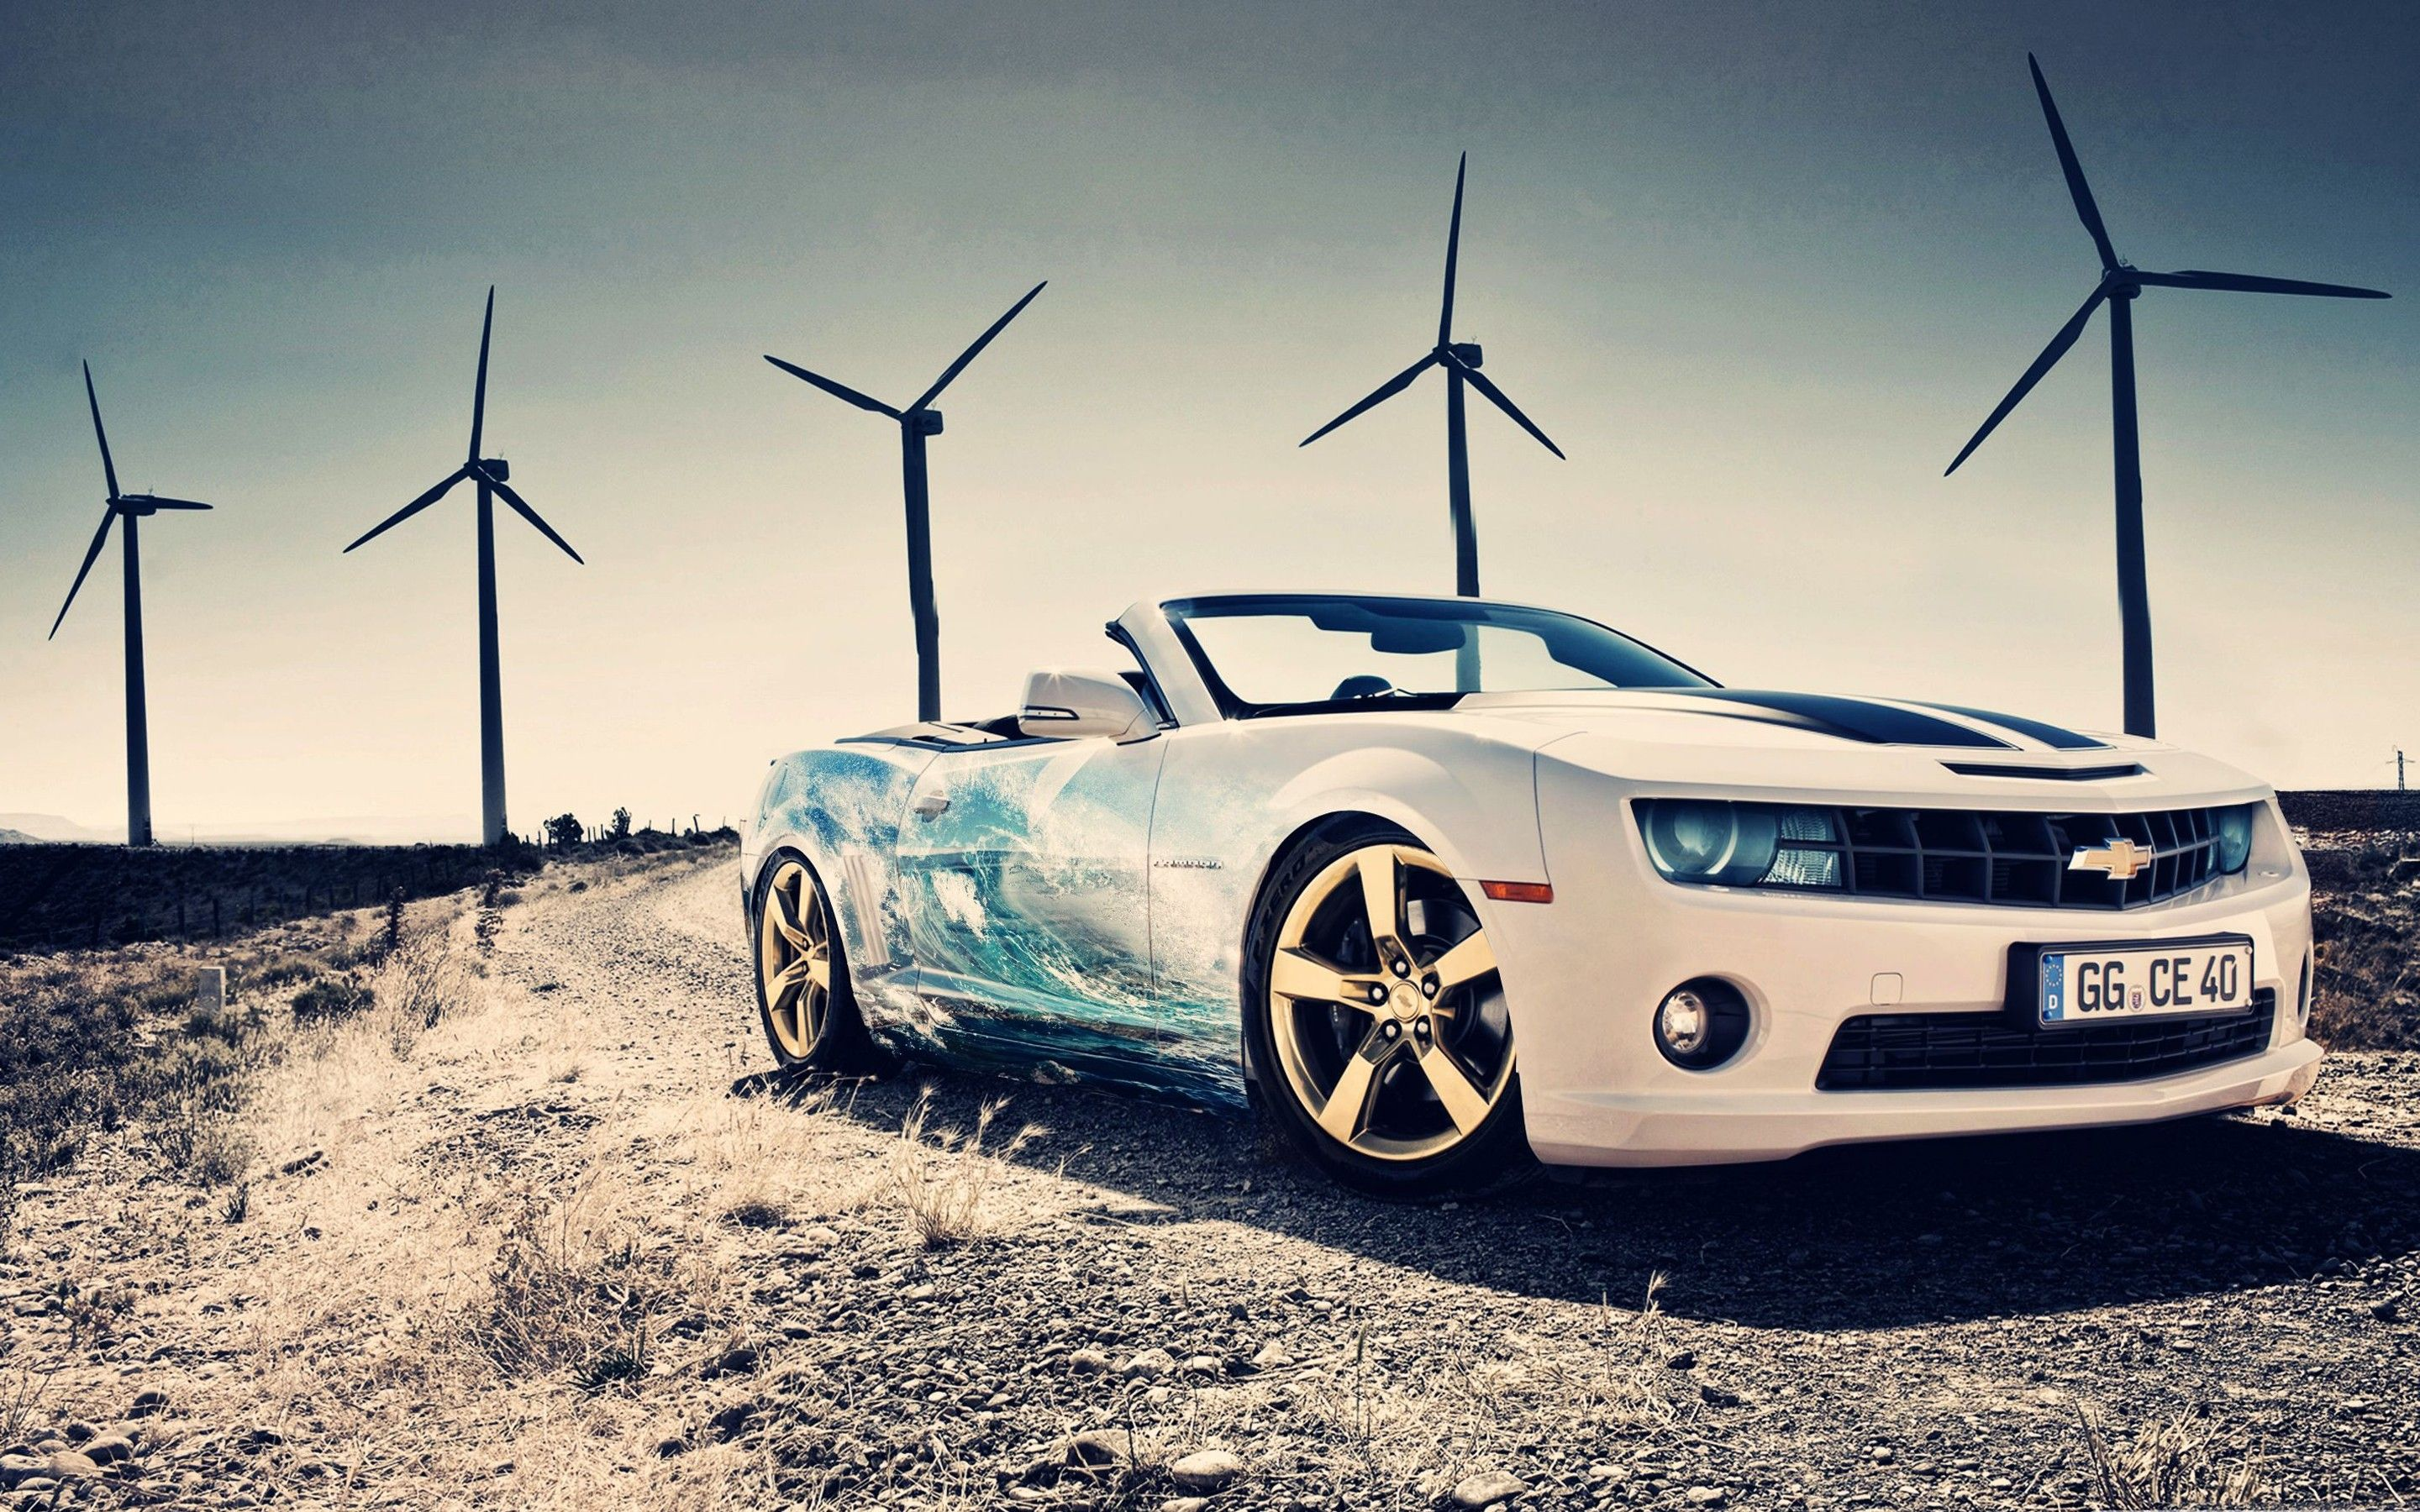 Hd Wallpapers Desktop Car Background Auto Datz | wallpapers ...